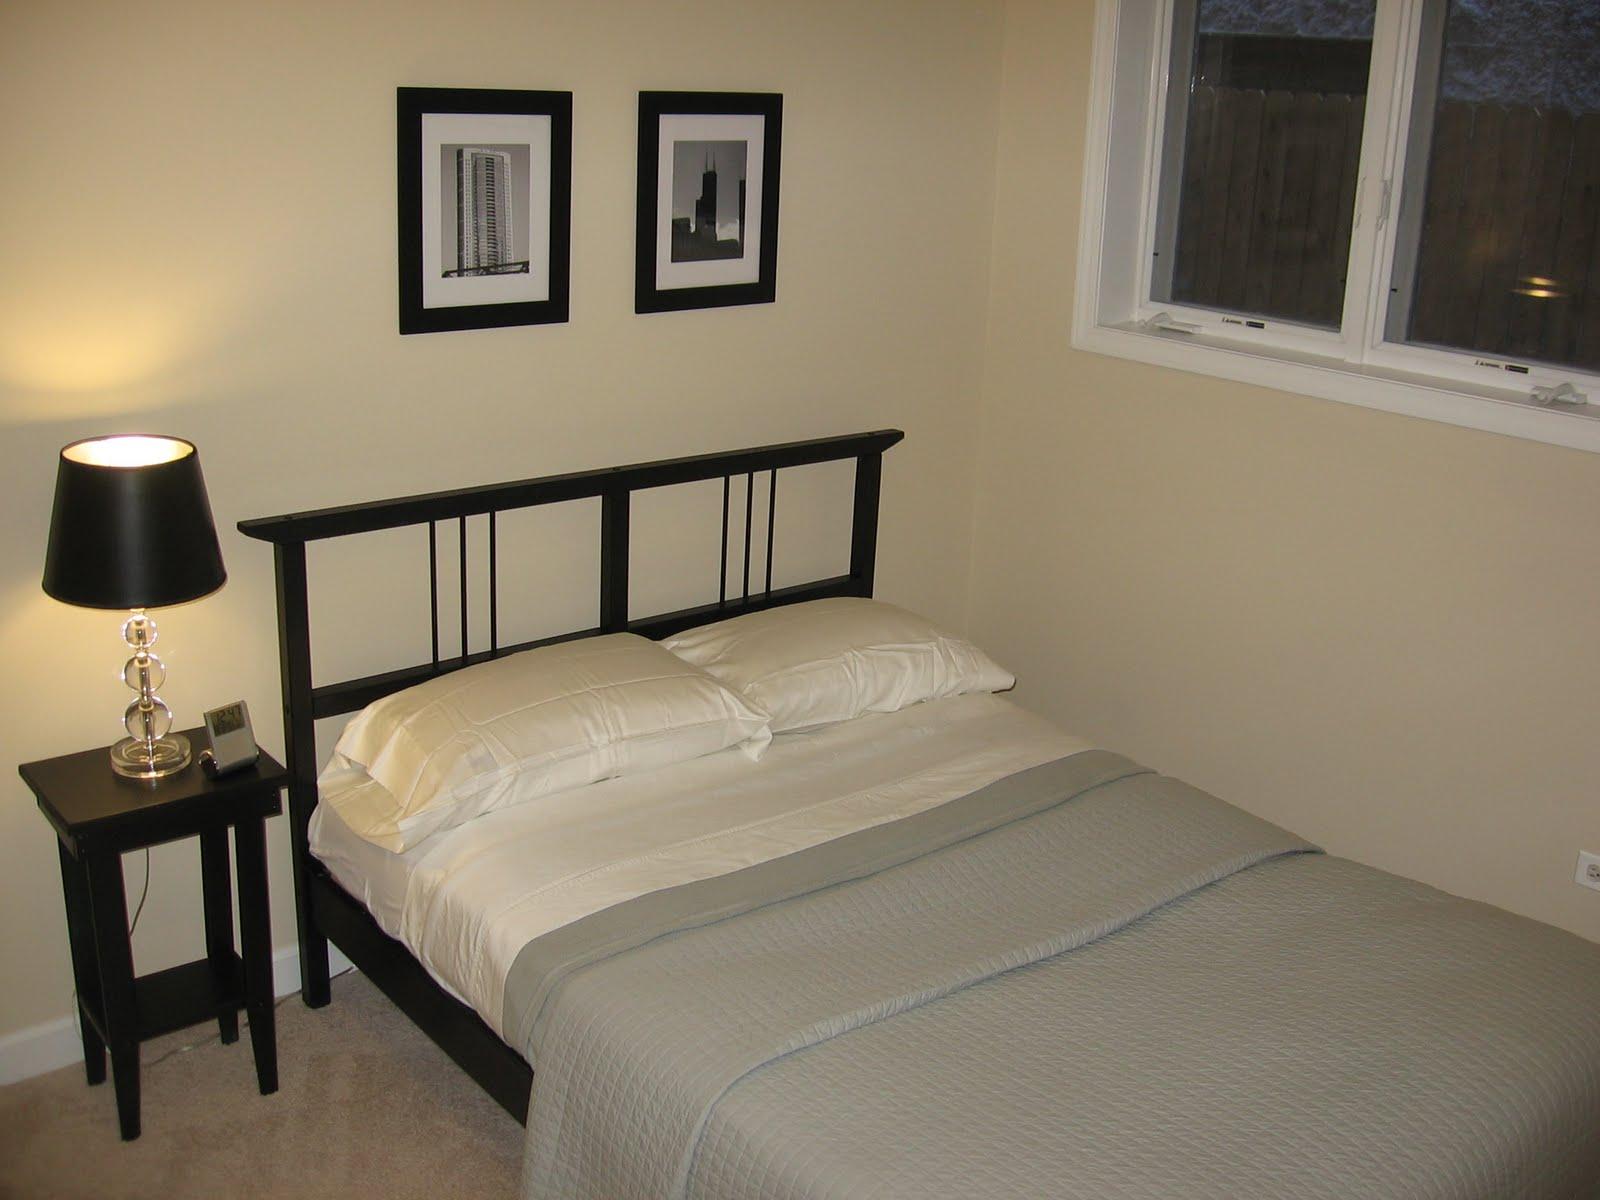 Image Result For Low Priced Bedroom